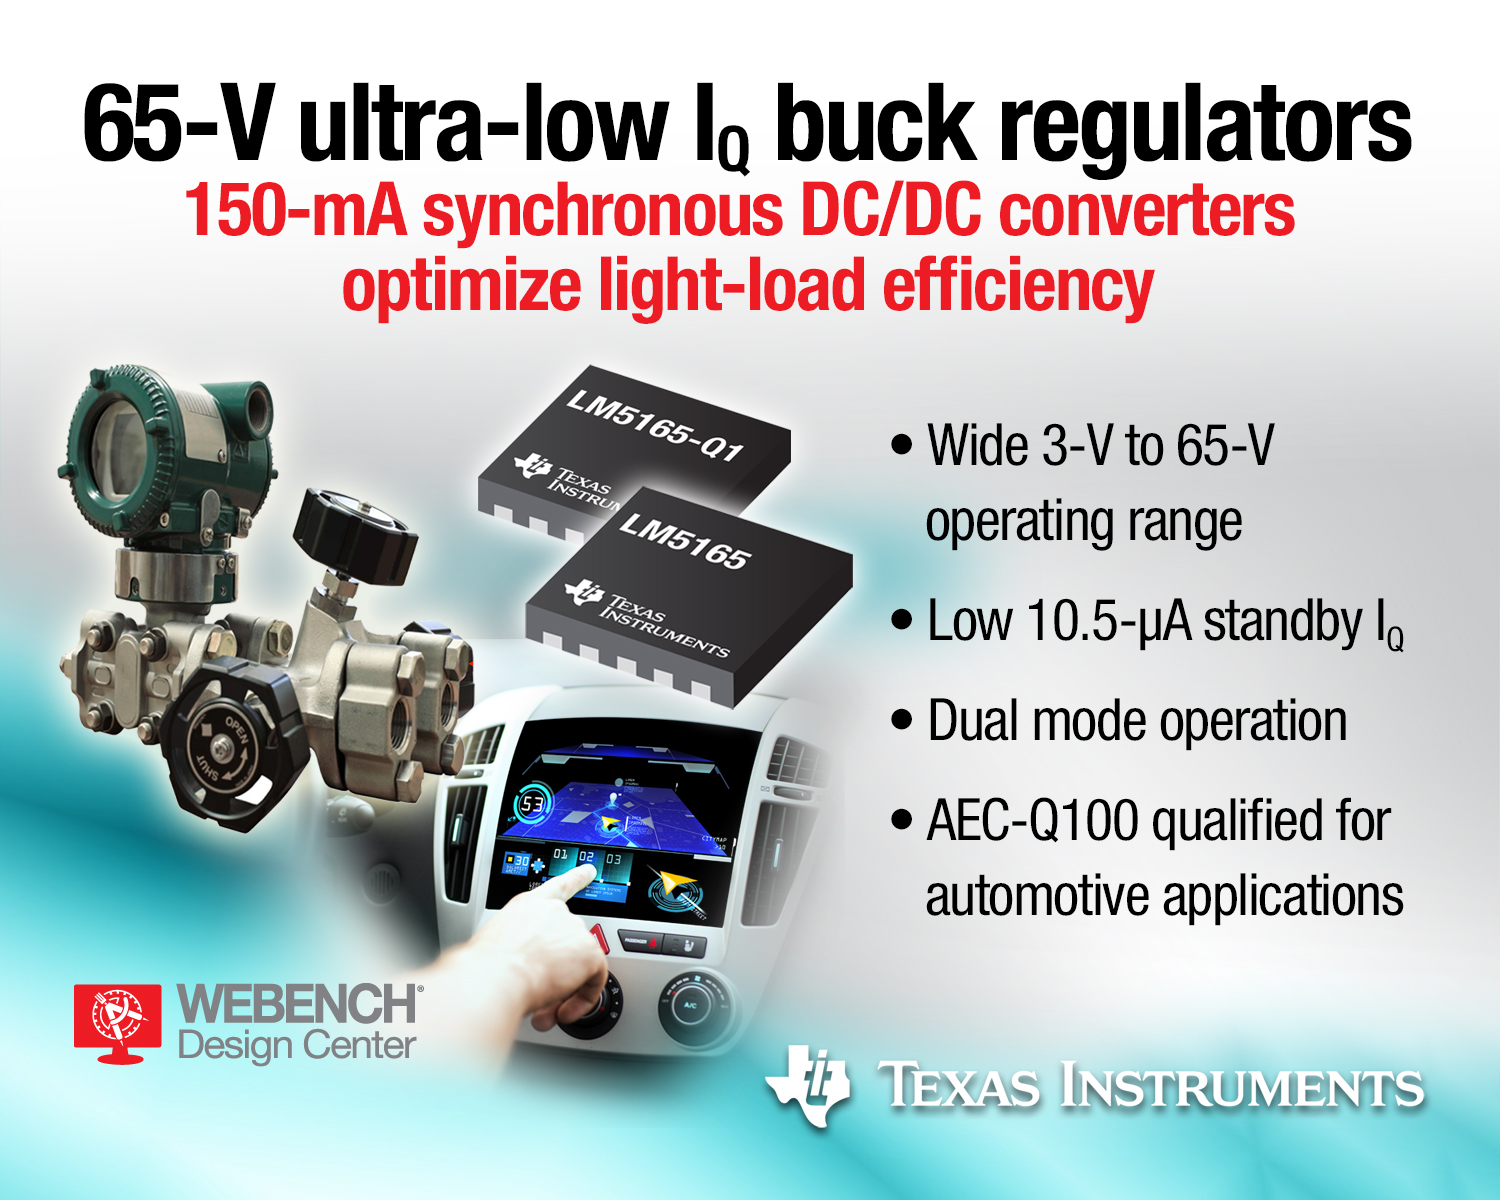 TI's 65-V micro-power buck converters claim industry's lowest quiescent current